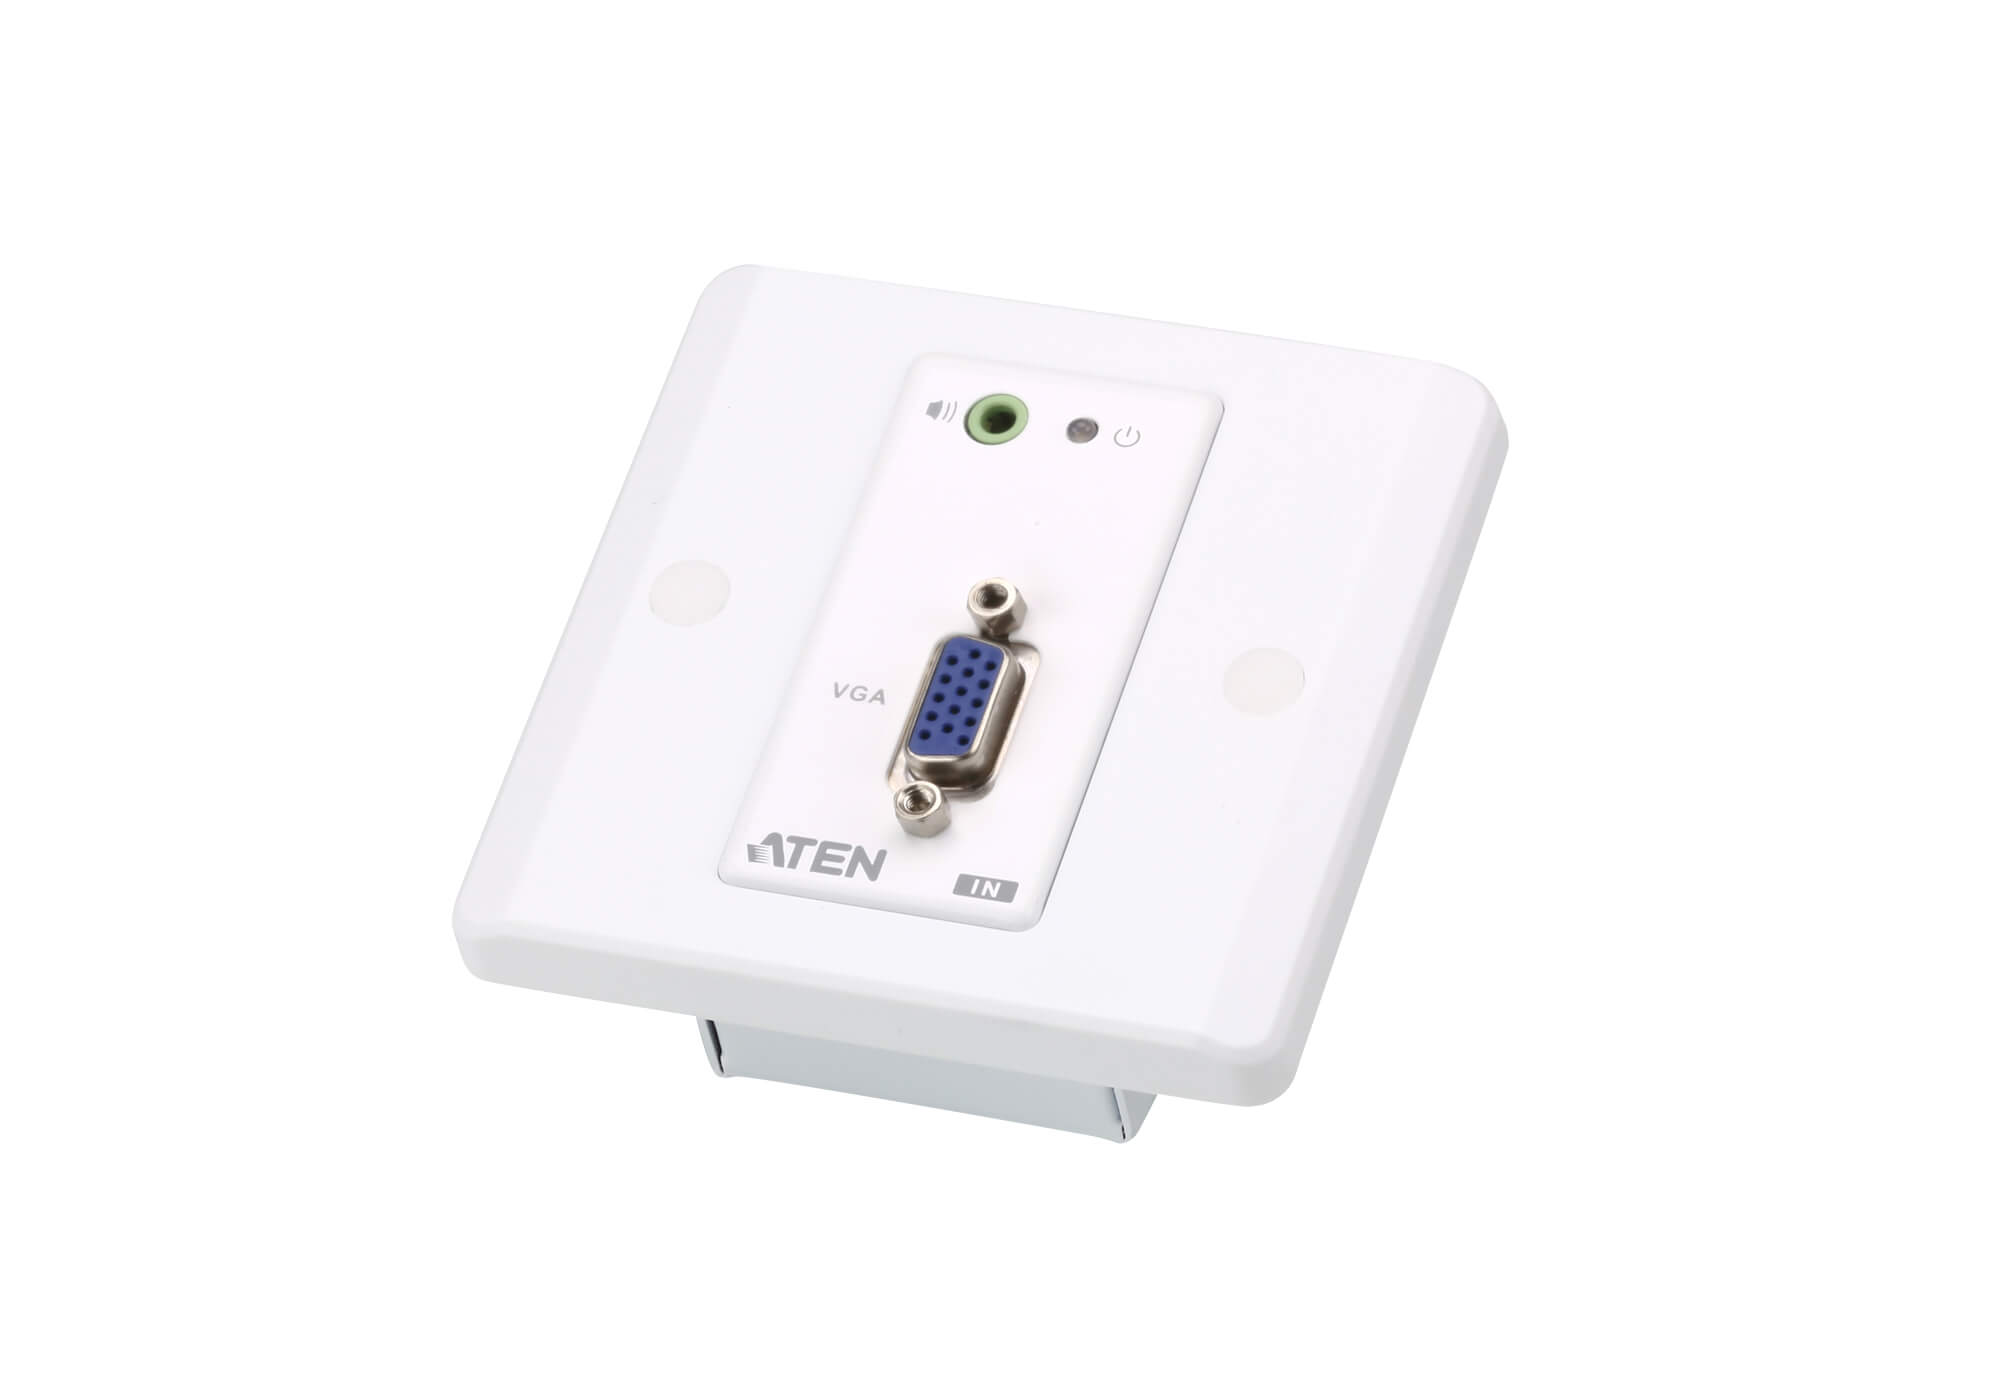 VGA/Audio Cat 5 Extender with MK Wall Plate (1280 x 1024 @150 m)-5